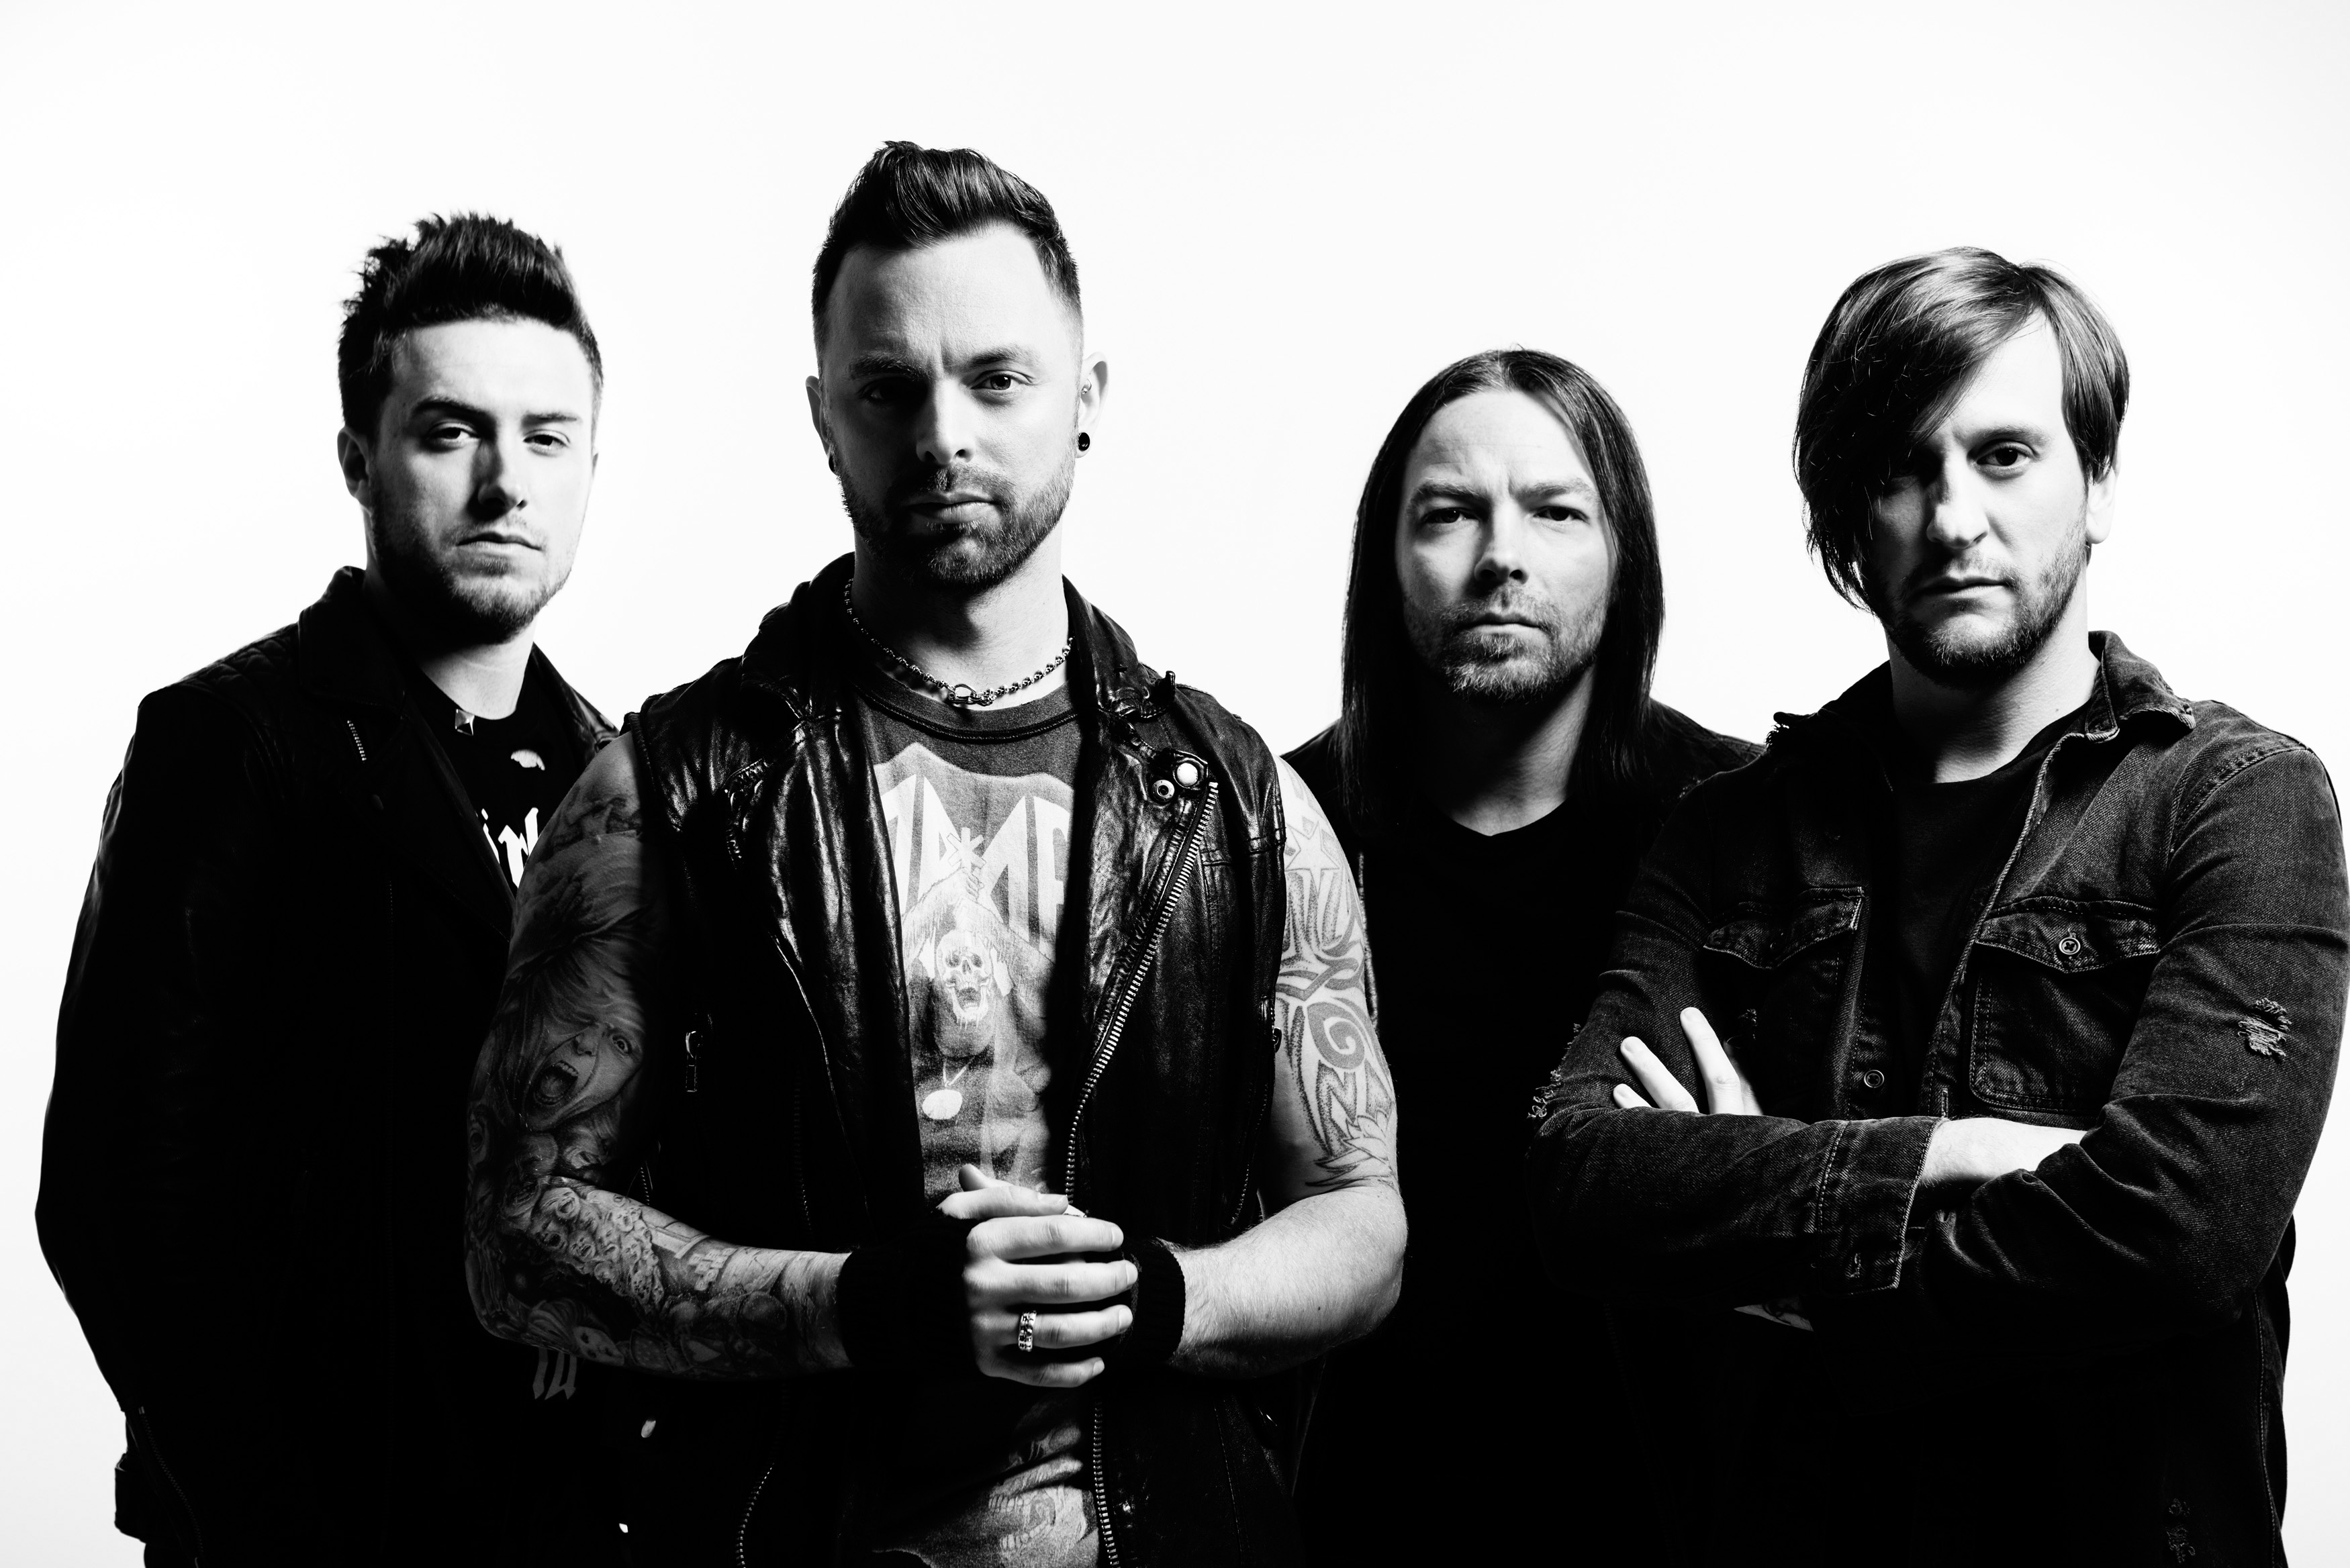 فرق هيفي ميتال صورة Bullet for my valentine